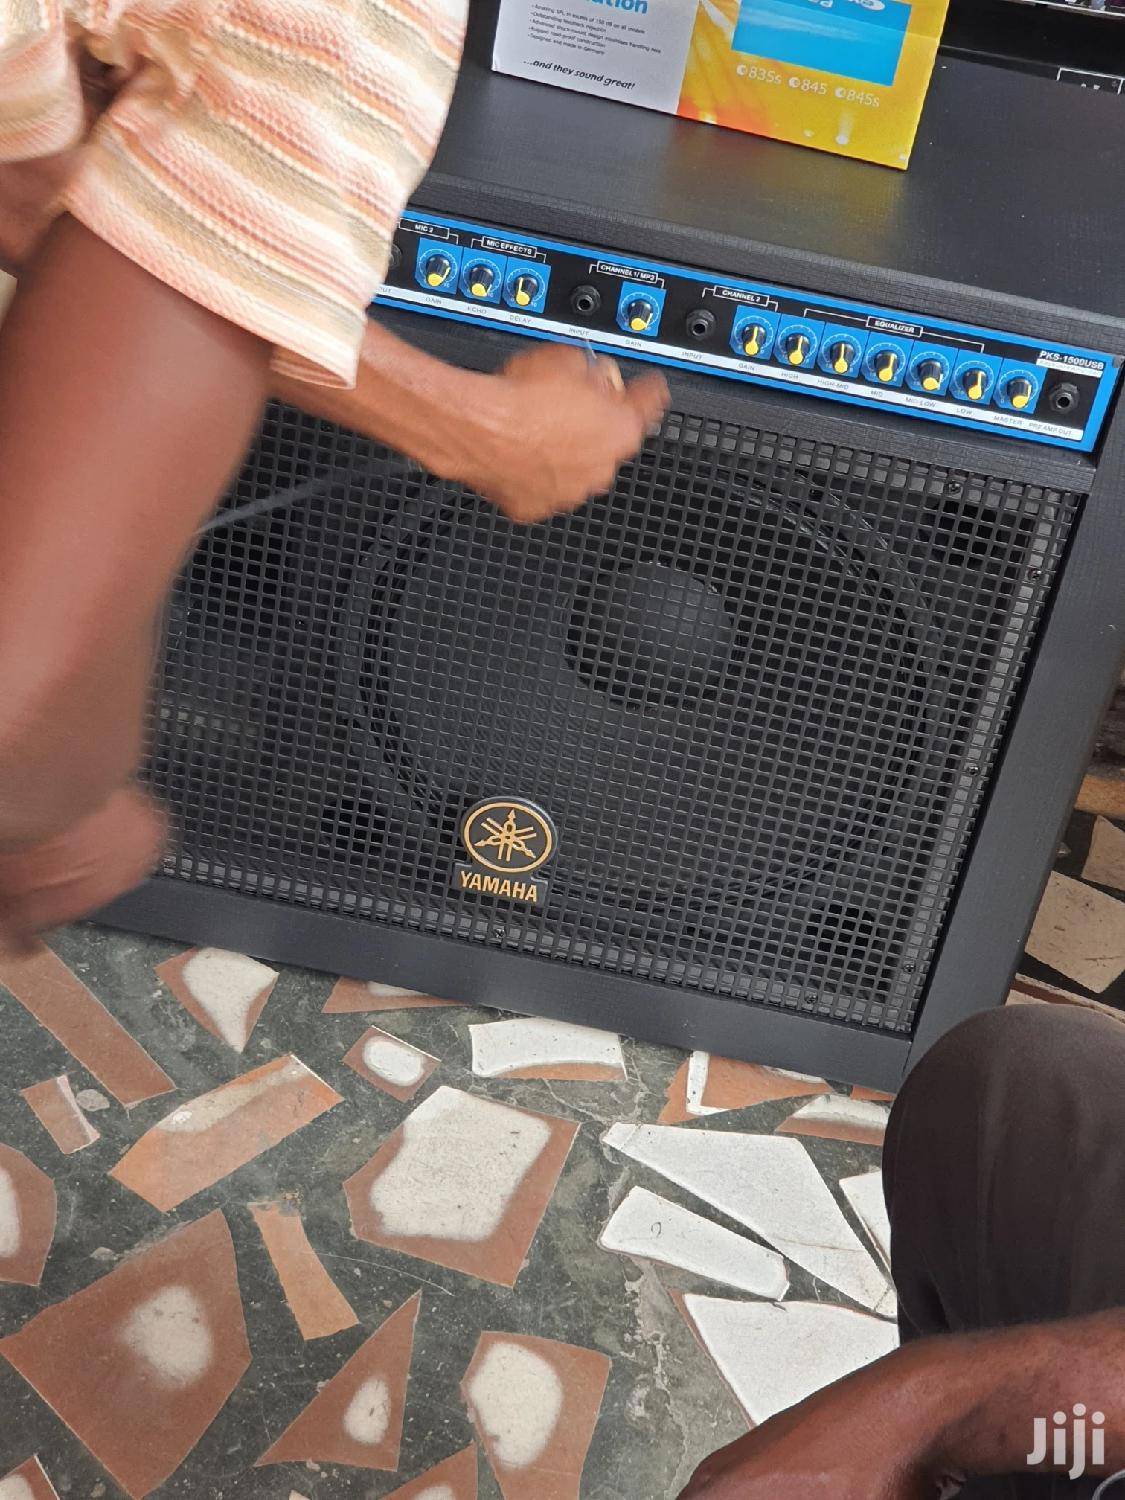 Yamaha Combo for Keyboards | Audio & Music Equipment for sale in Accra Metropolitan, Greater Accra, Ghana